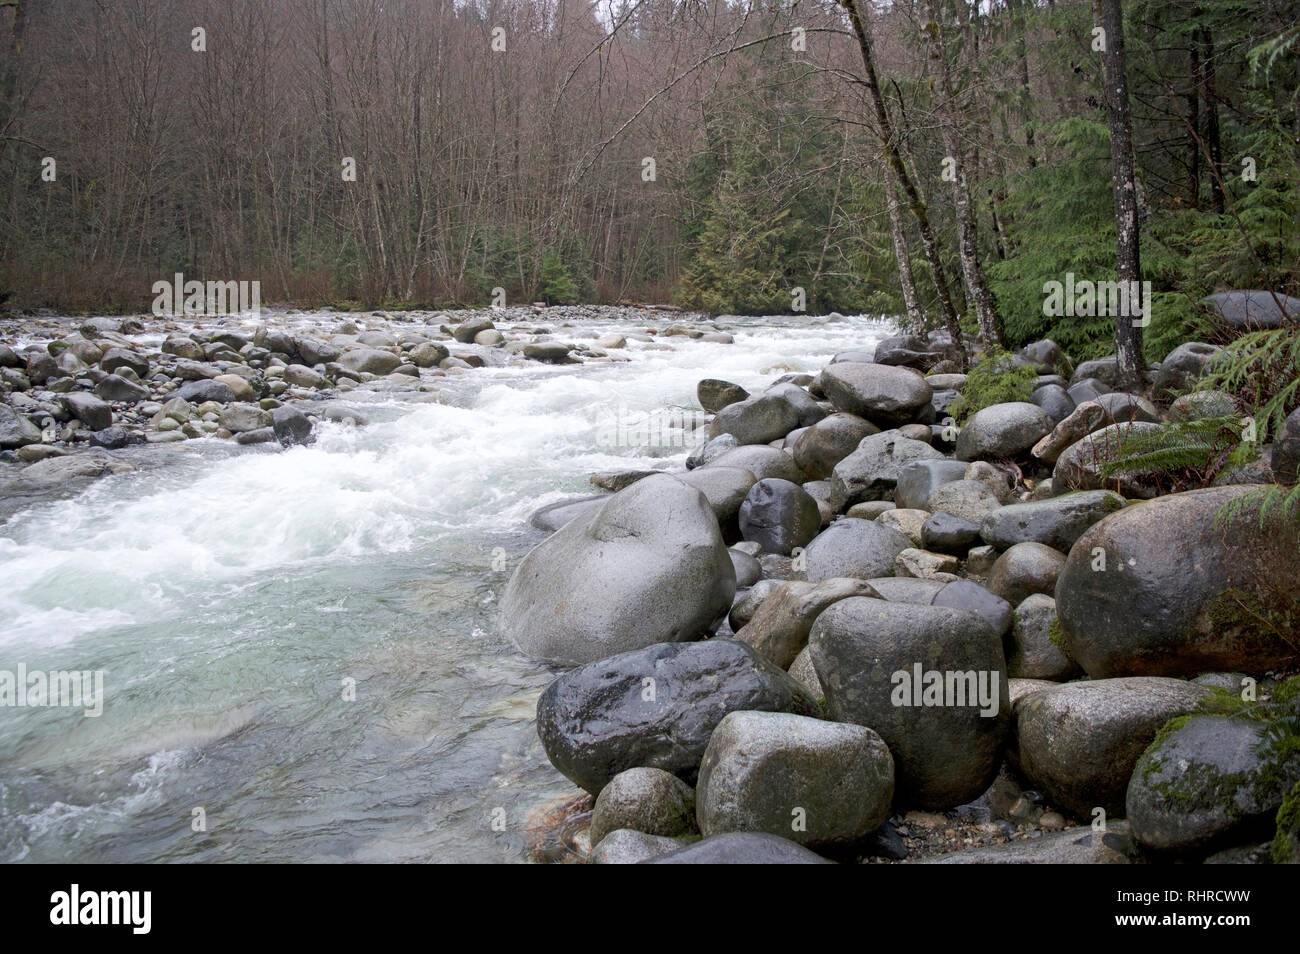 A river bend in British Columbia, Canada during a spring thaw. Lynn River Stock Photo